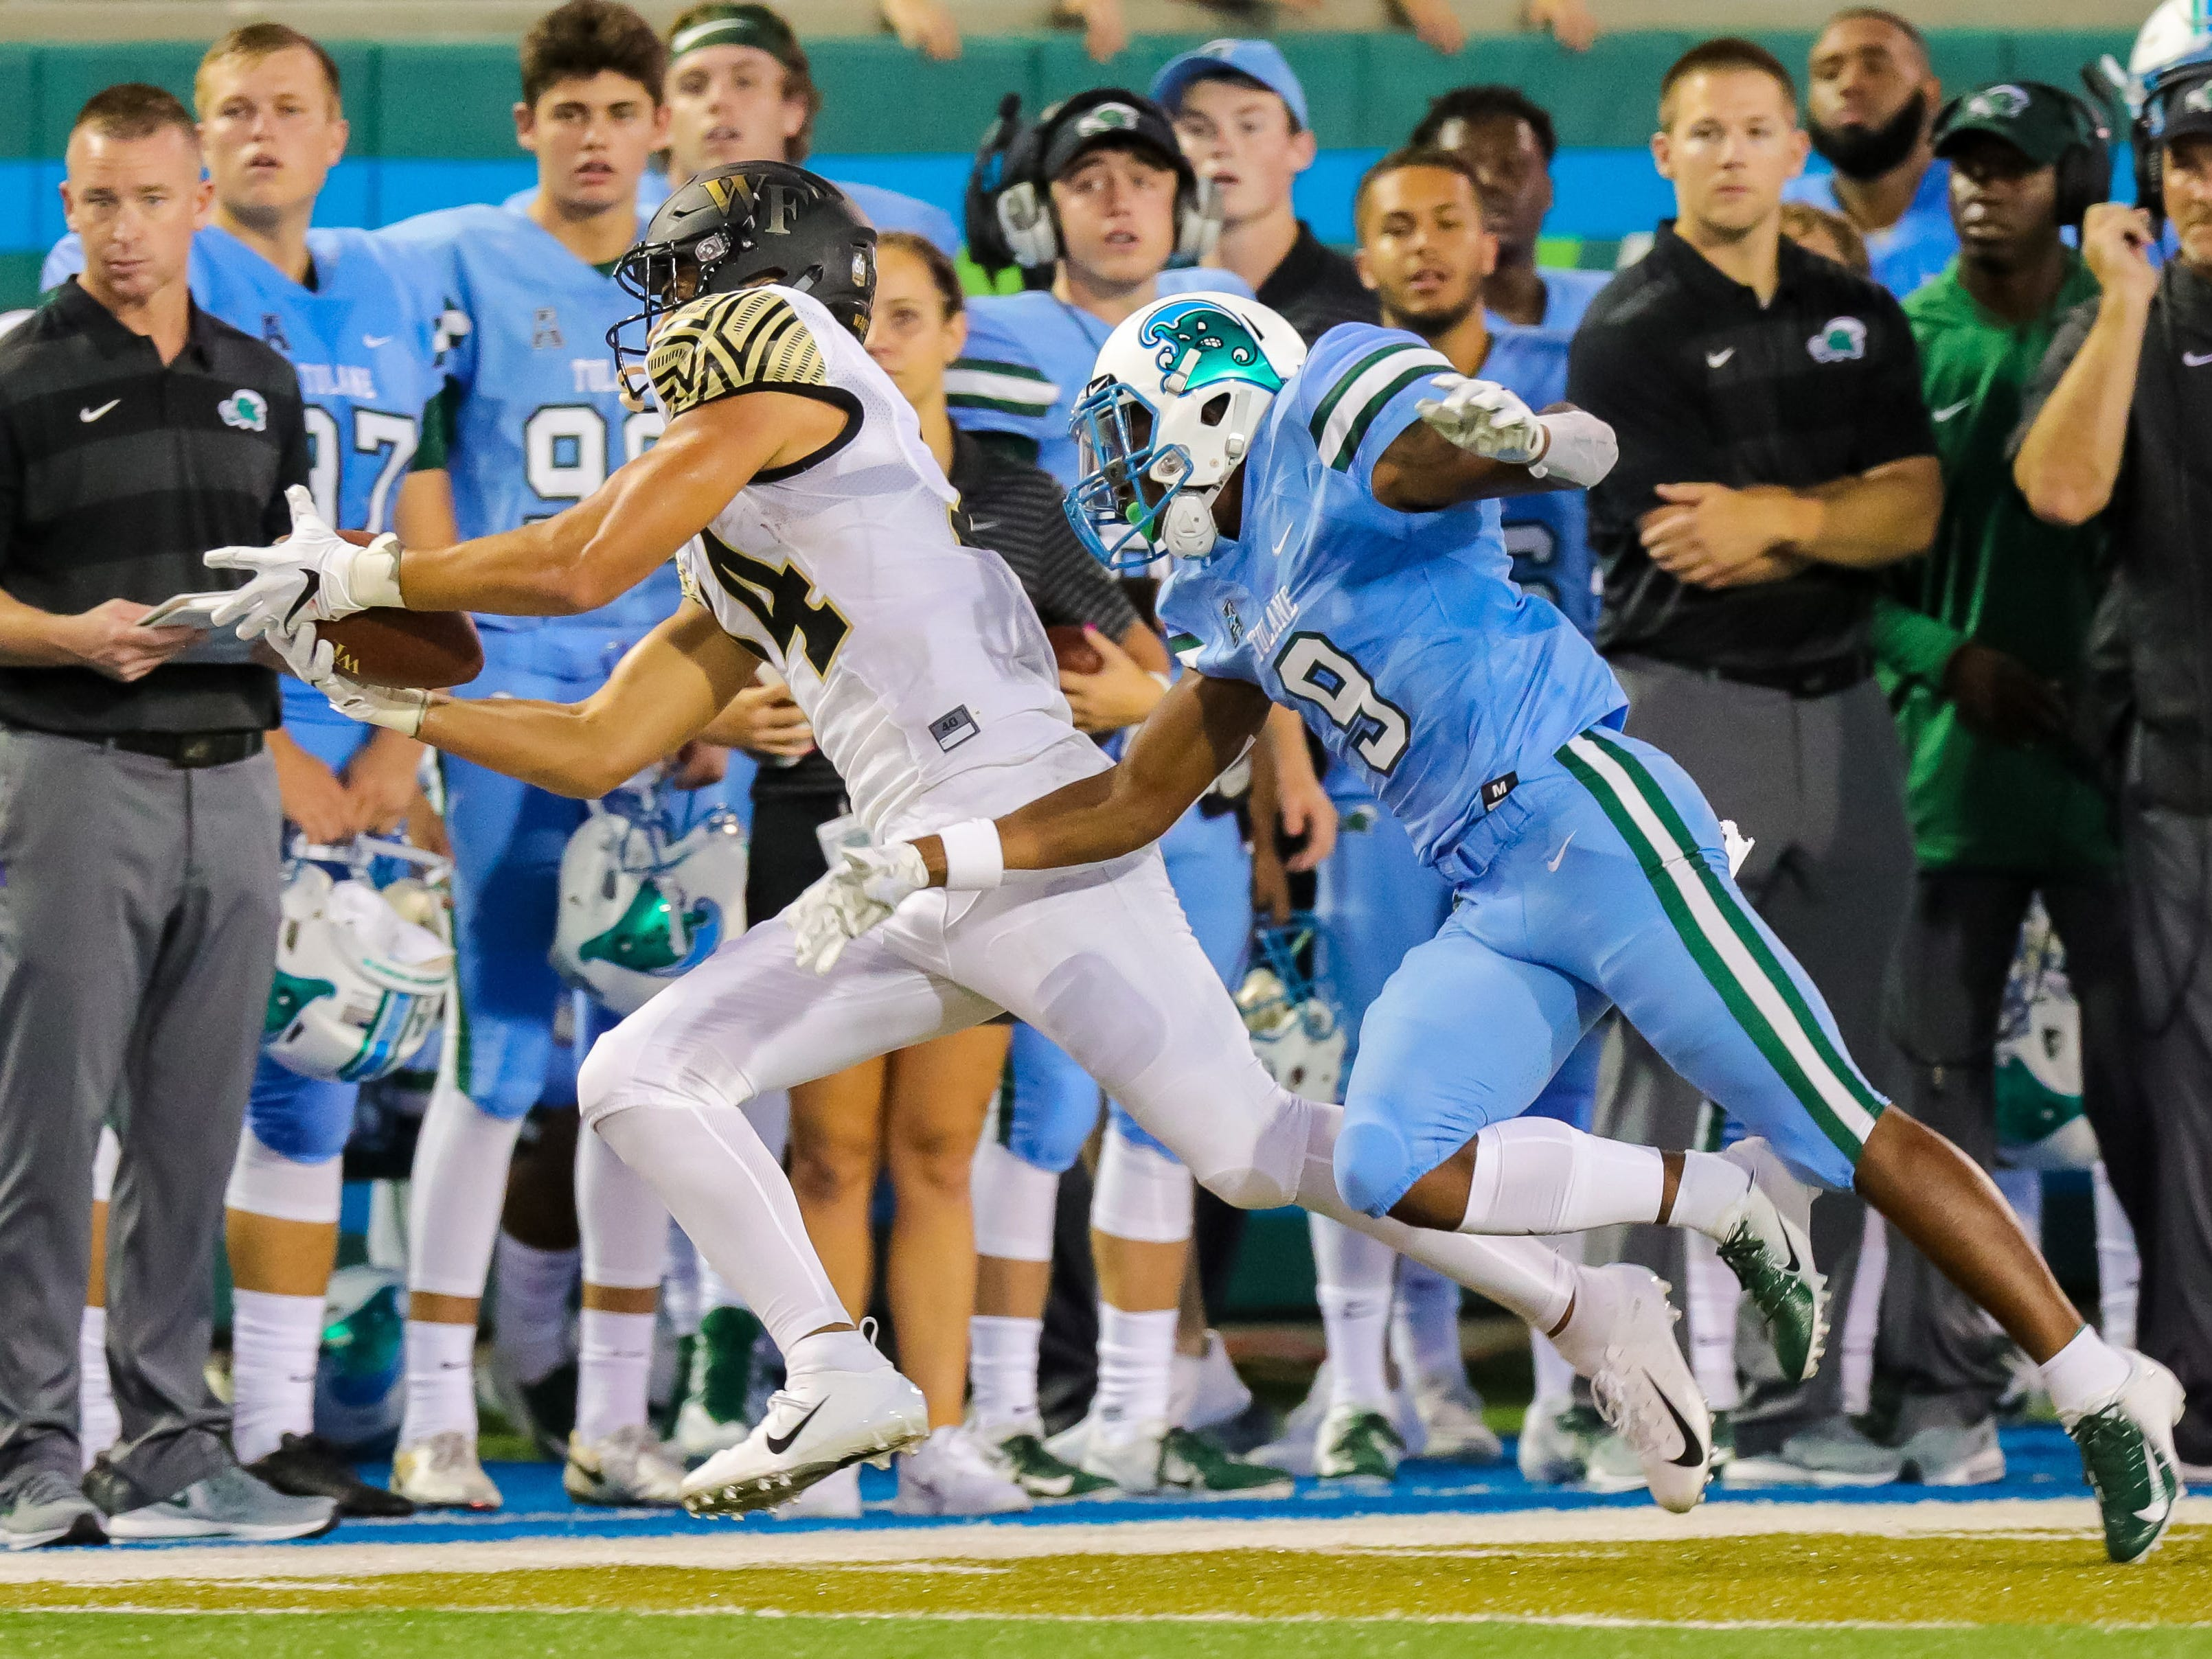 Wake Forest wide receiver Sage Surratt catches a 14-yard pass in the first quarter against Tulane cornerback Jaylon Monroe (9) at Yulman Stadium.